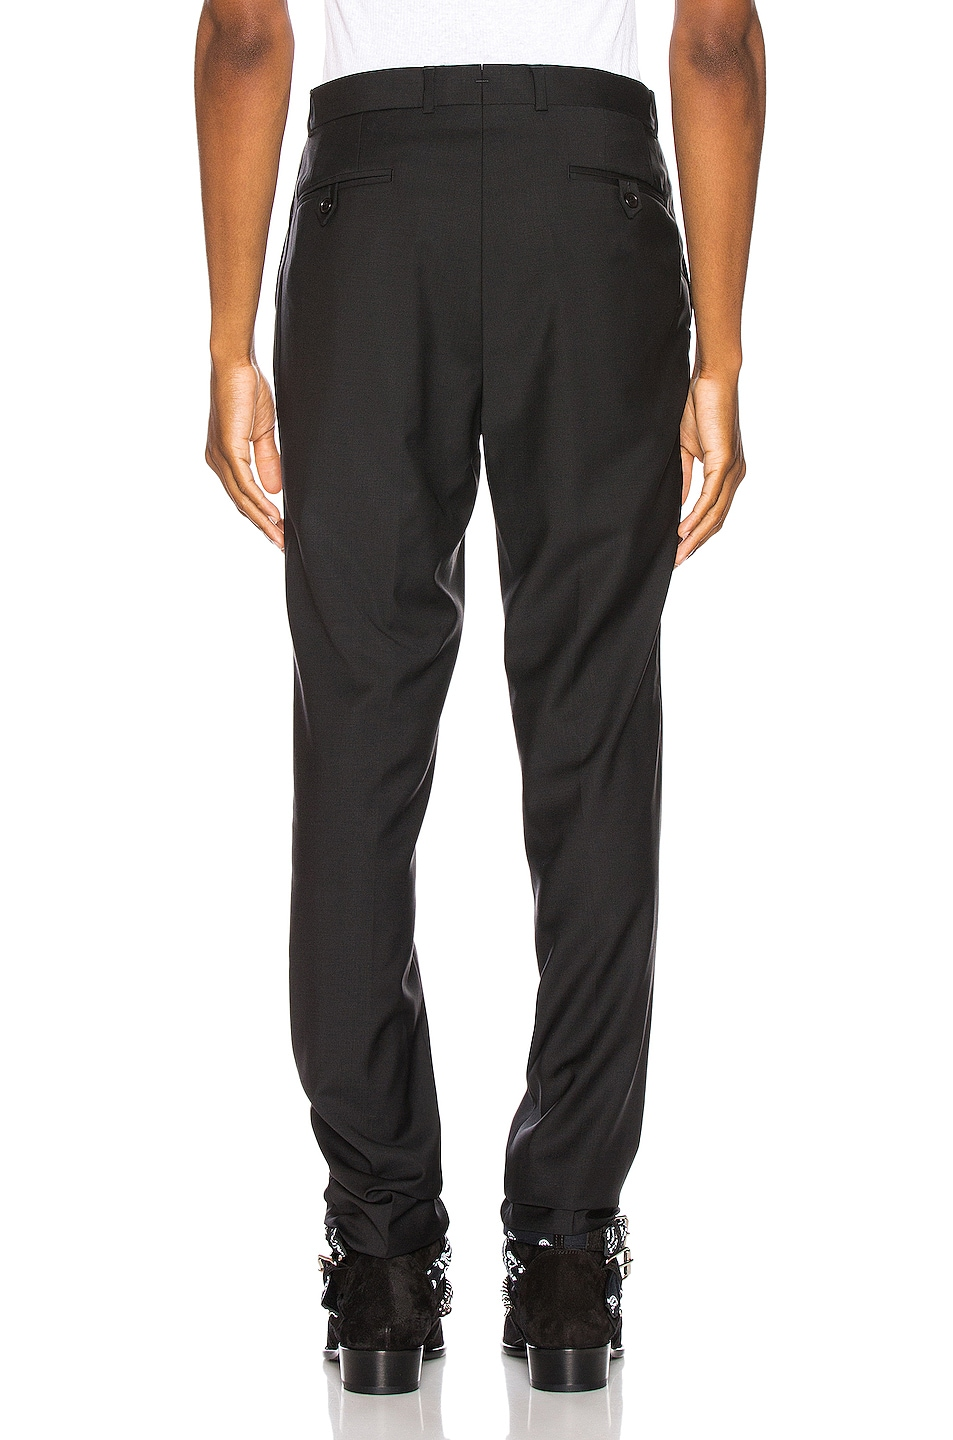 Image 3 of SSS World Corp Suit Pant in Black